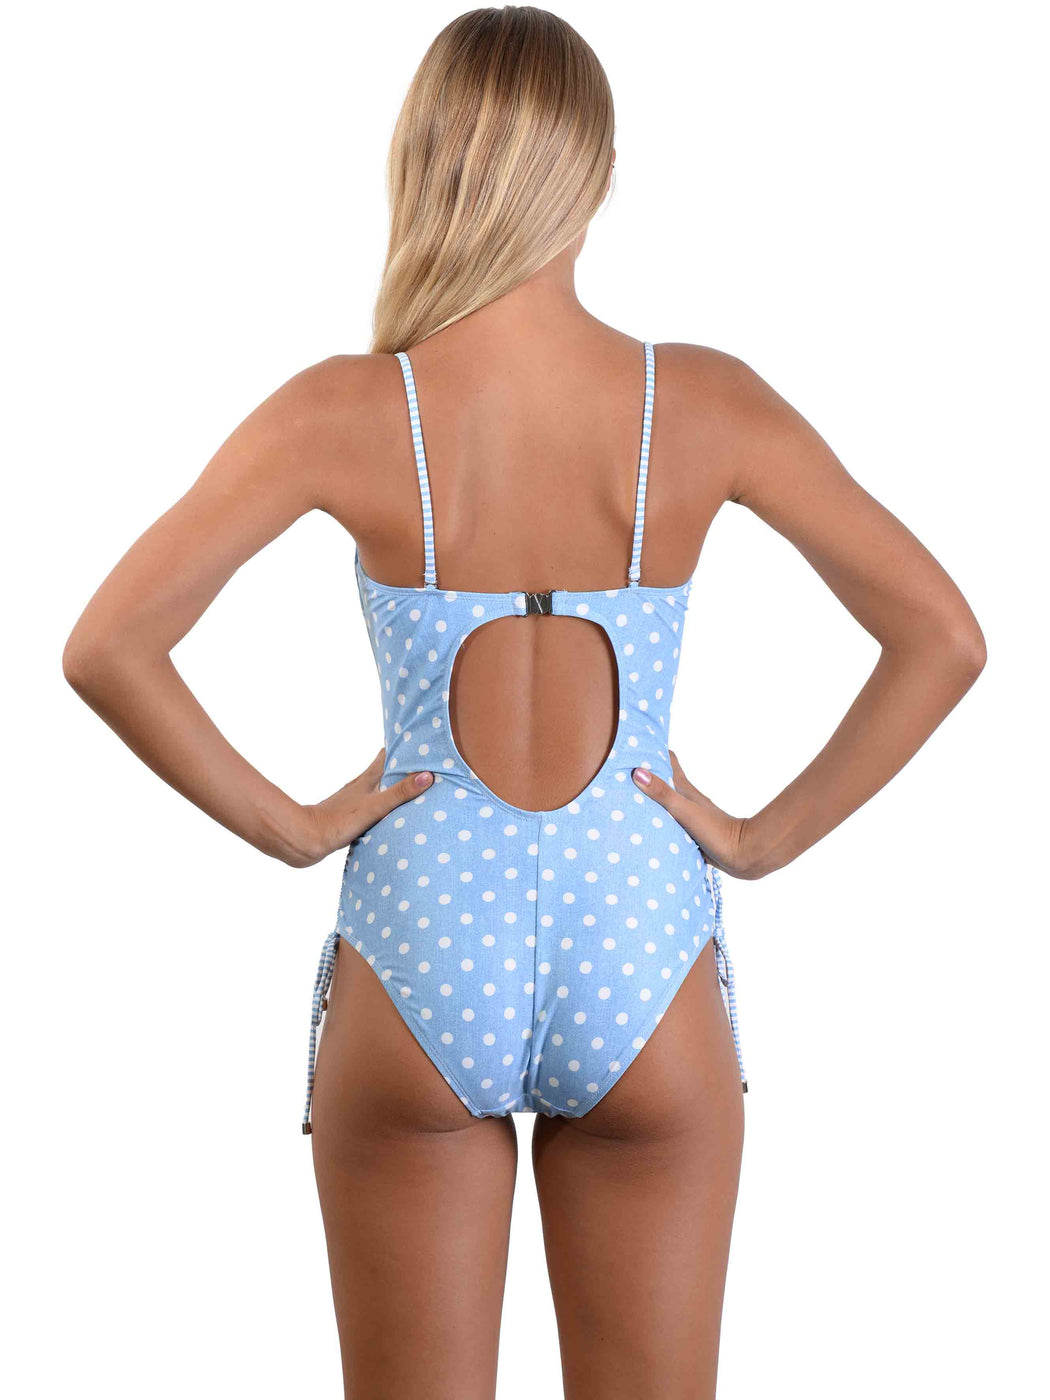 Back of Blue Hawaii Bandeau Spot Onepiece with straps